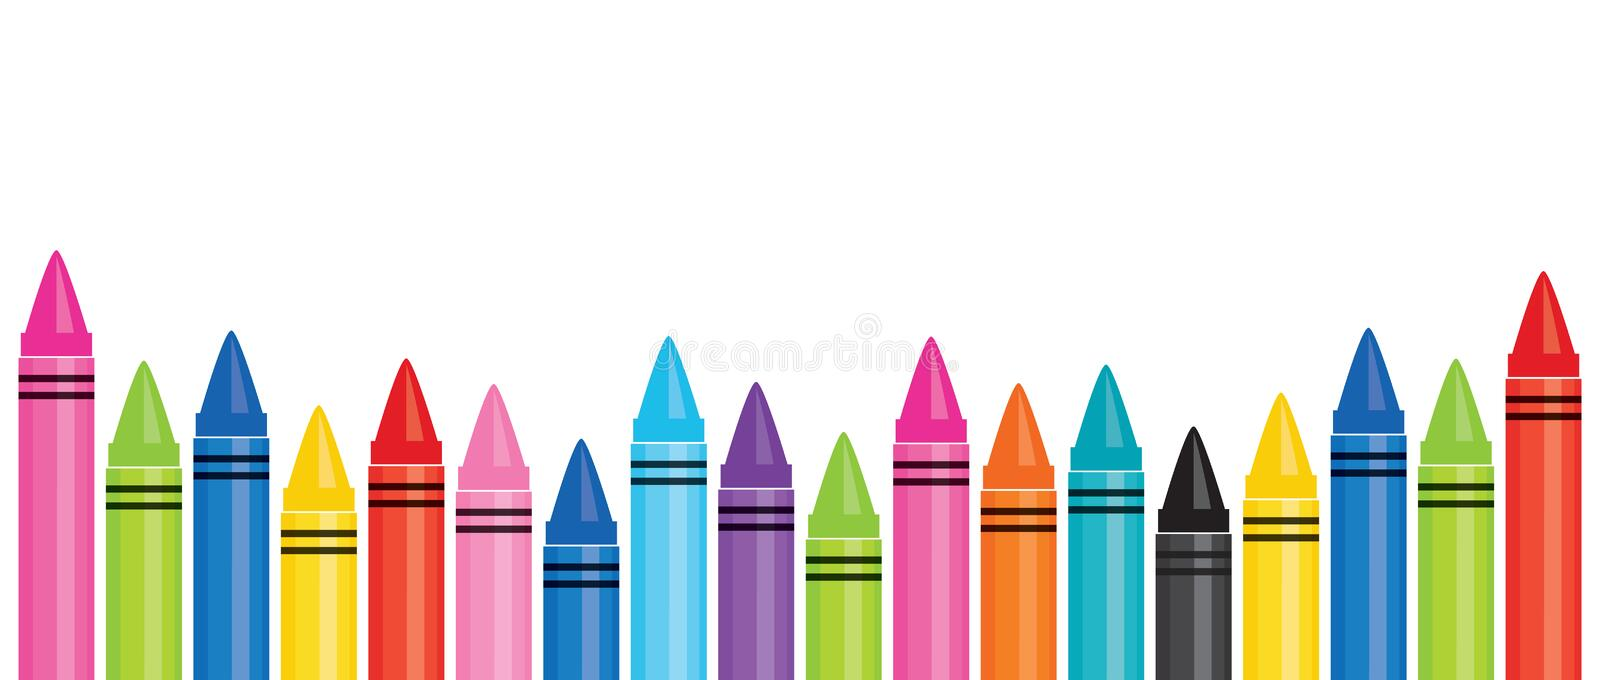 Education banner template with colorful crayons 2 stock illustration